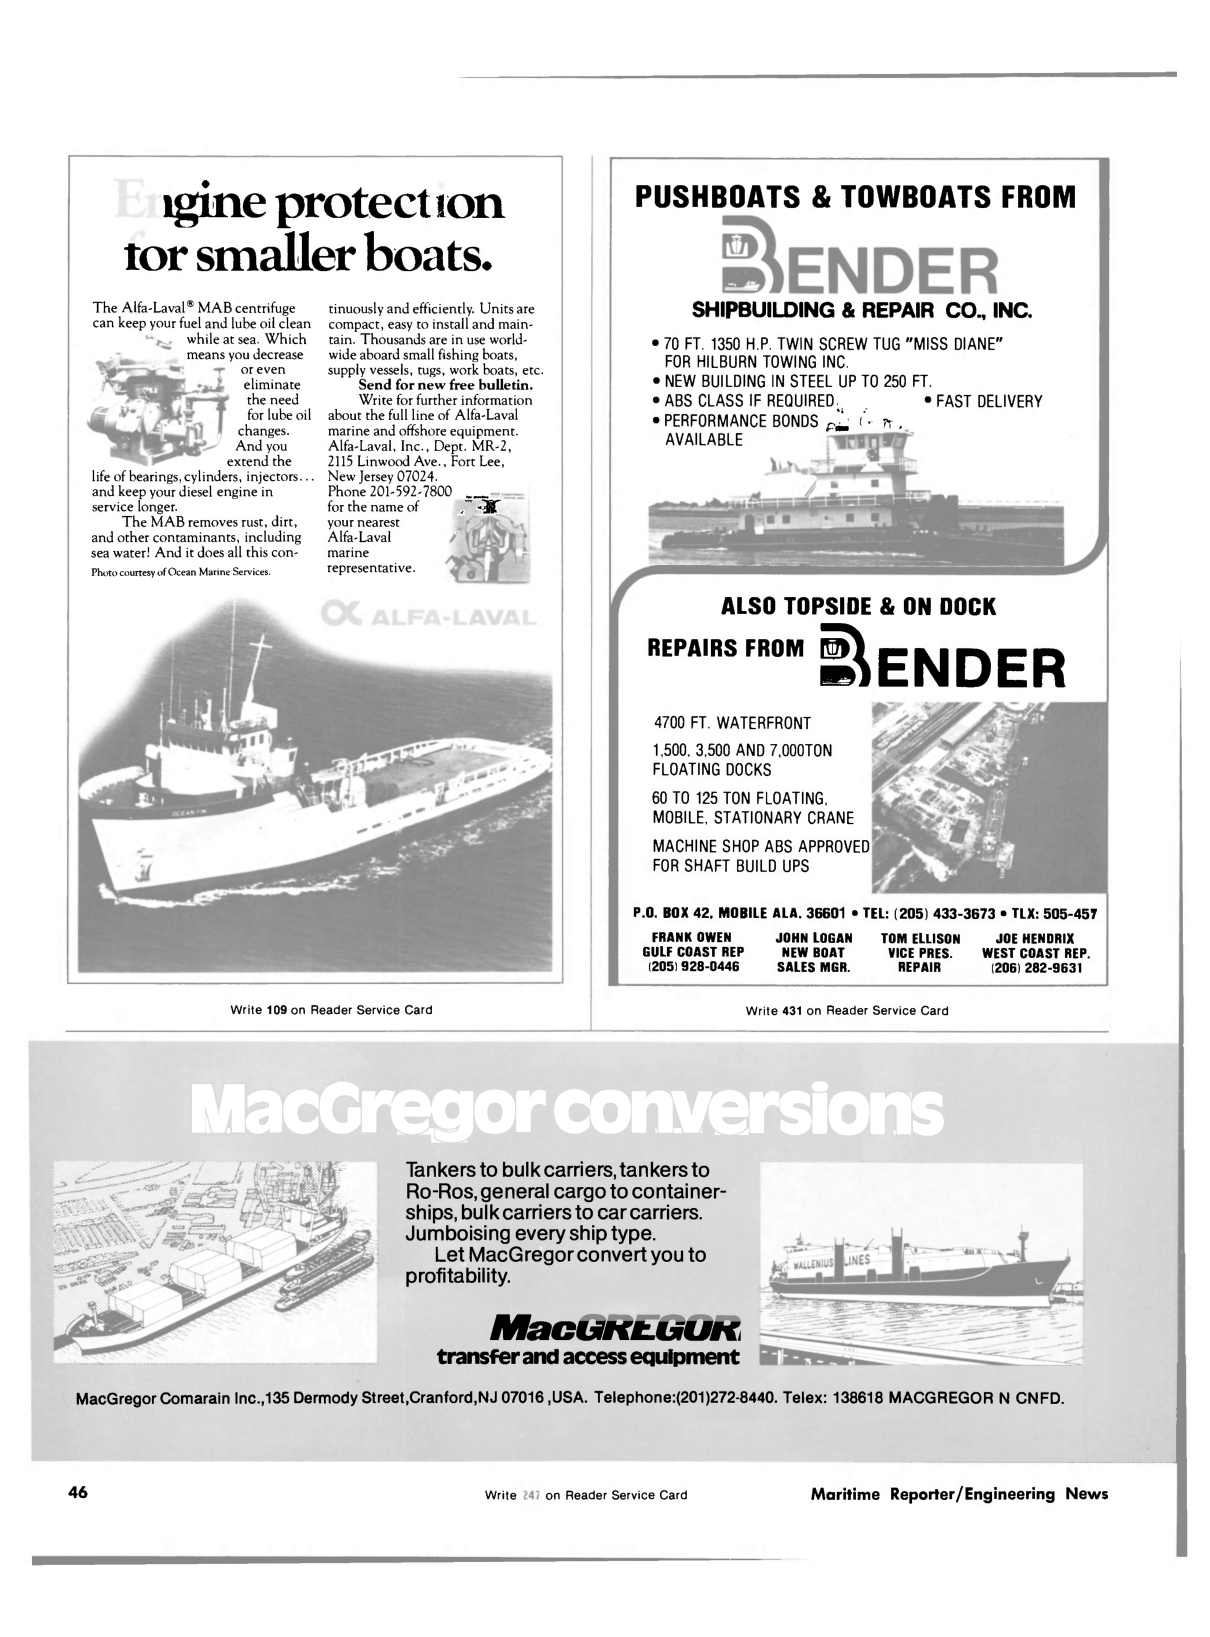 ViewMaritime Reporter And Engineering News July 1981